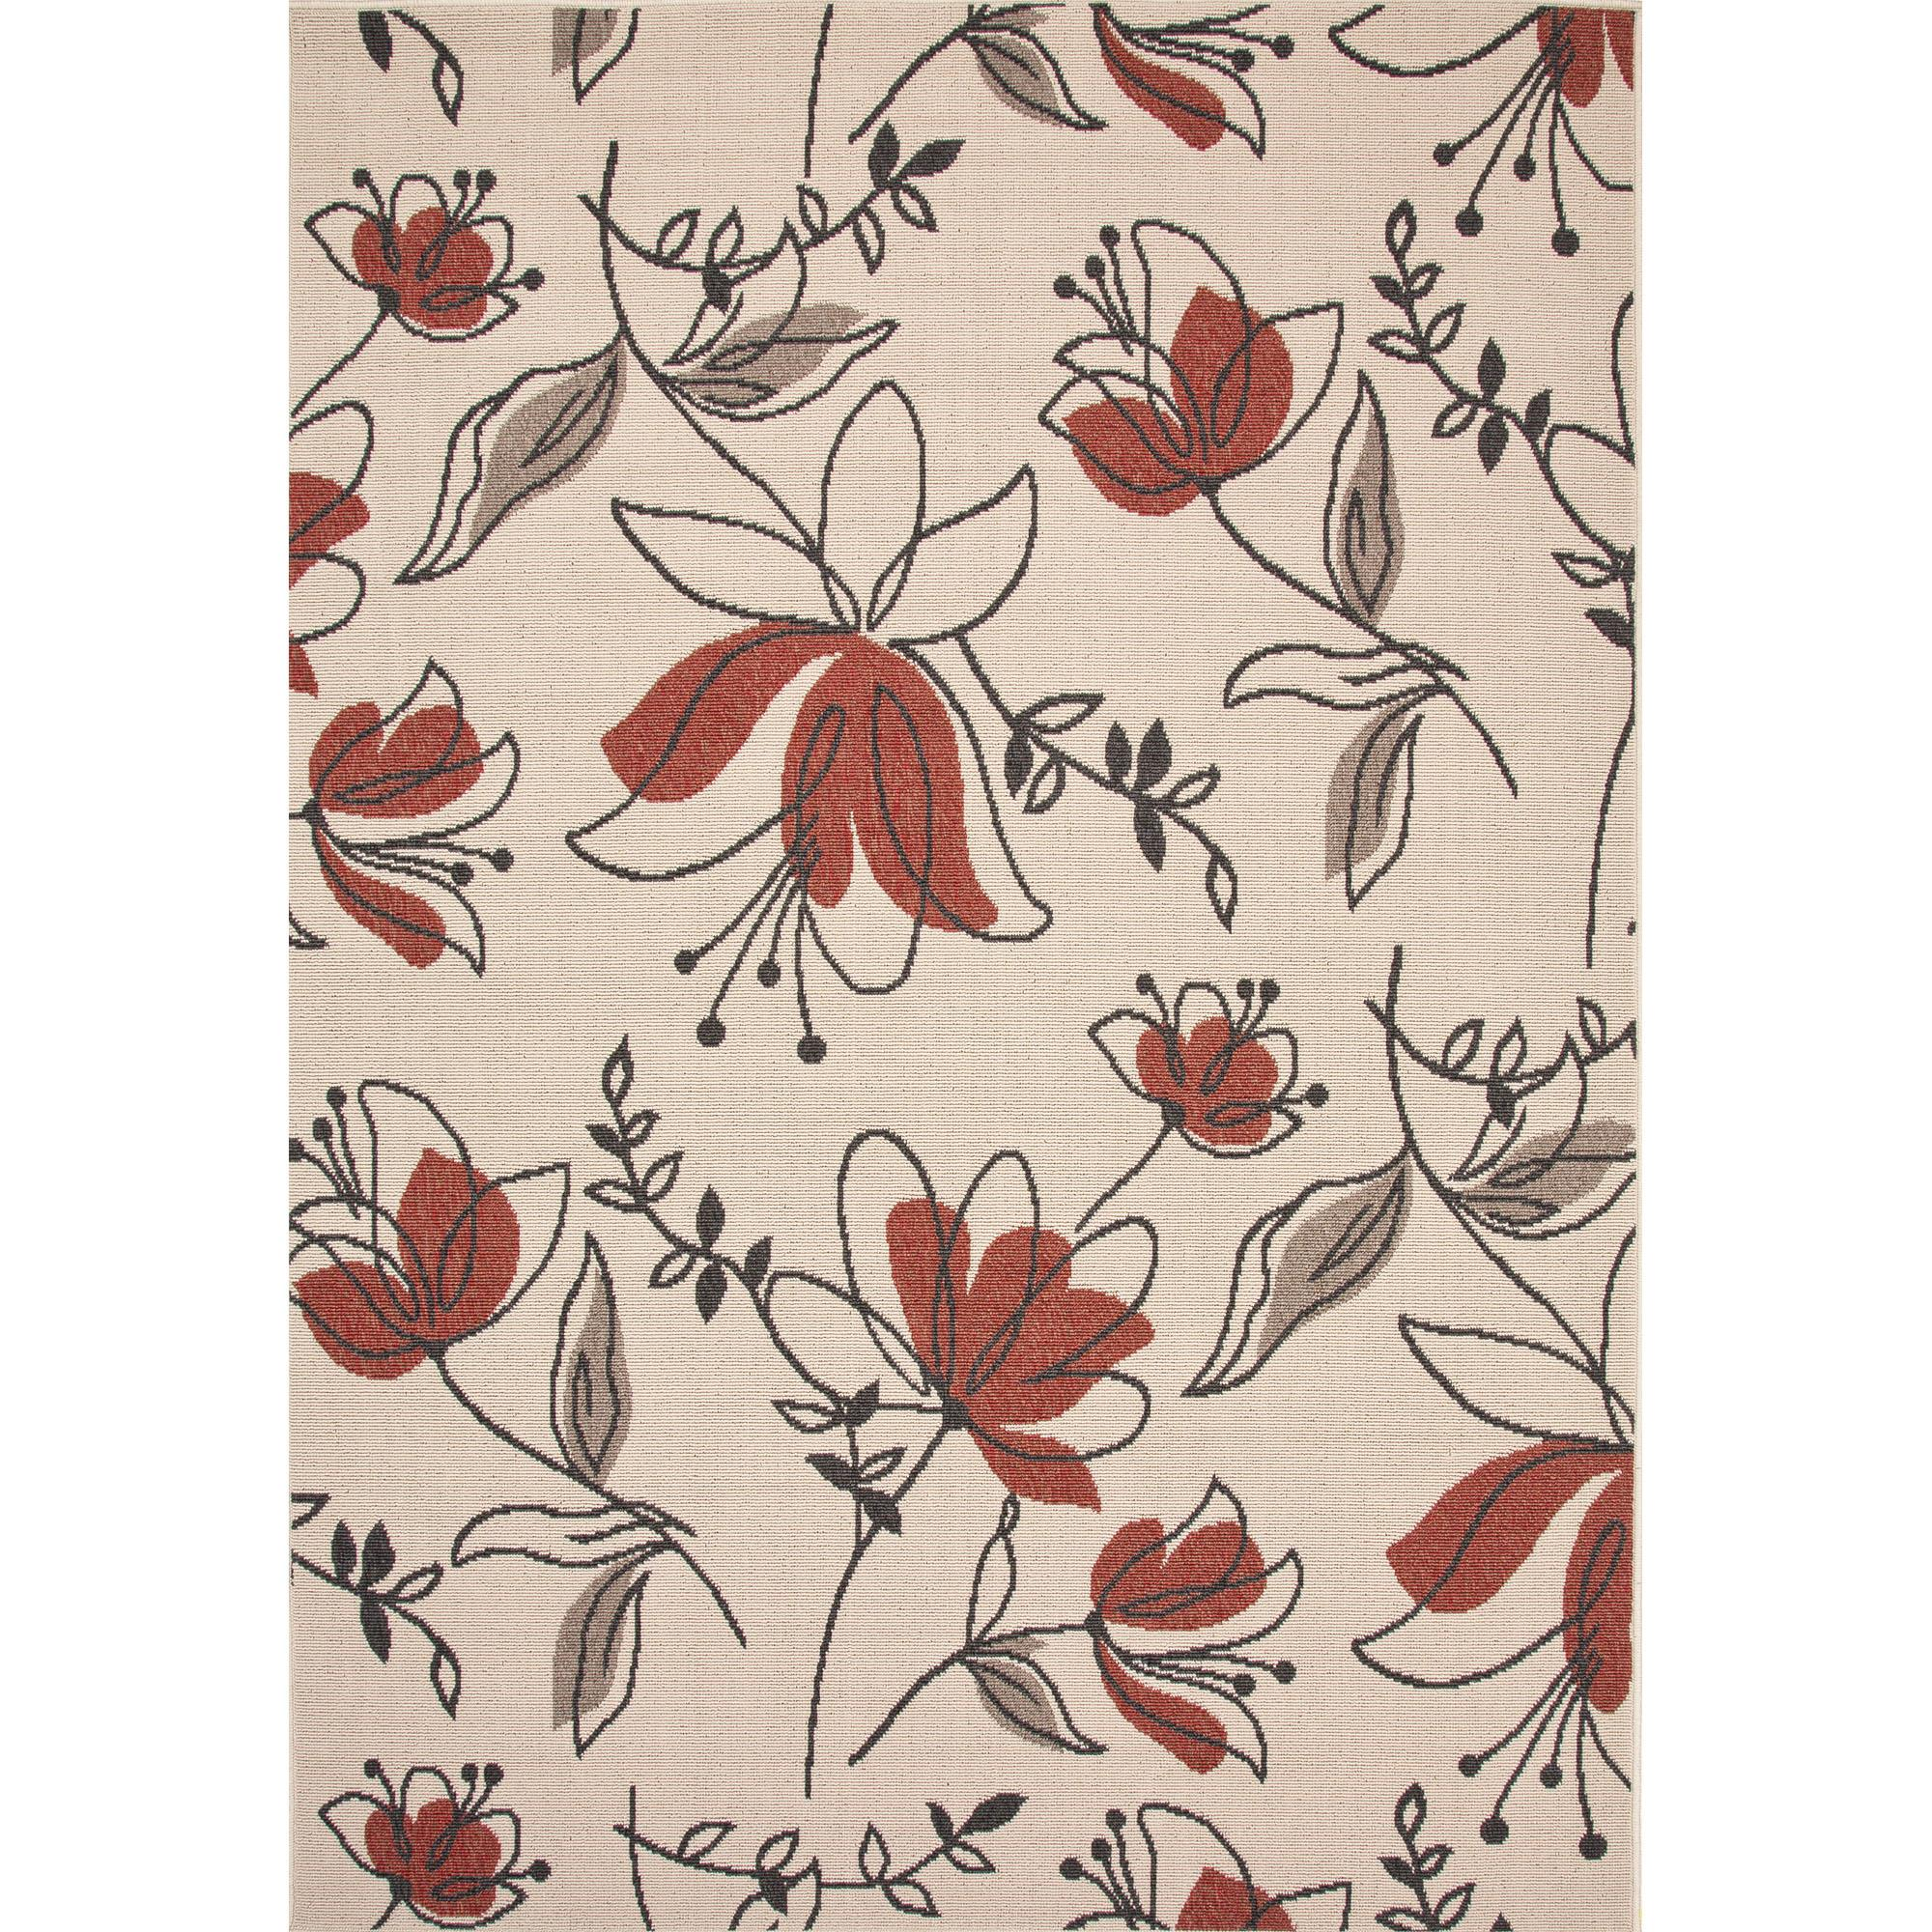 JAIPUR Rugs Bloom 4 x 5.3 Rug - Item Number: RUG121914